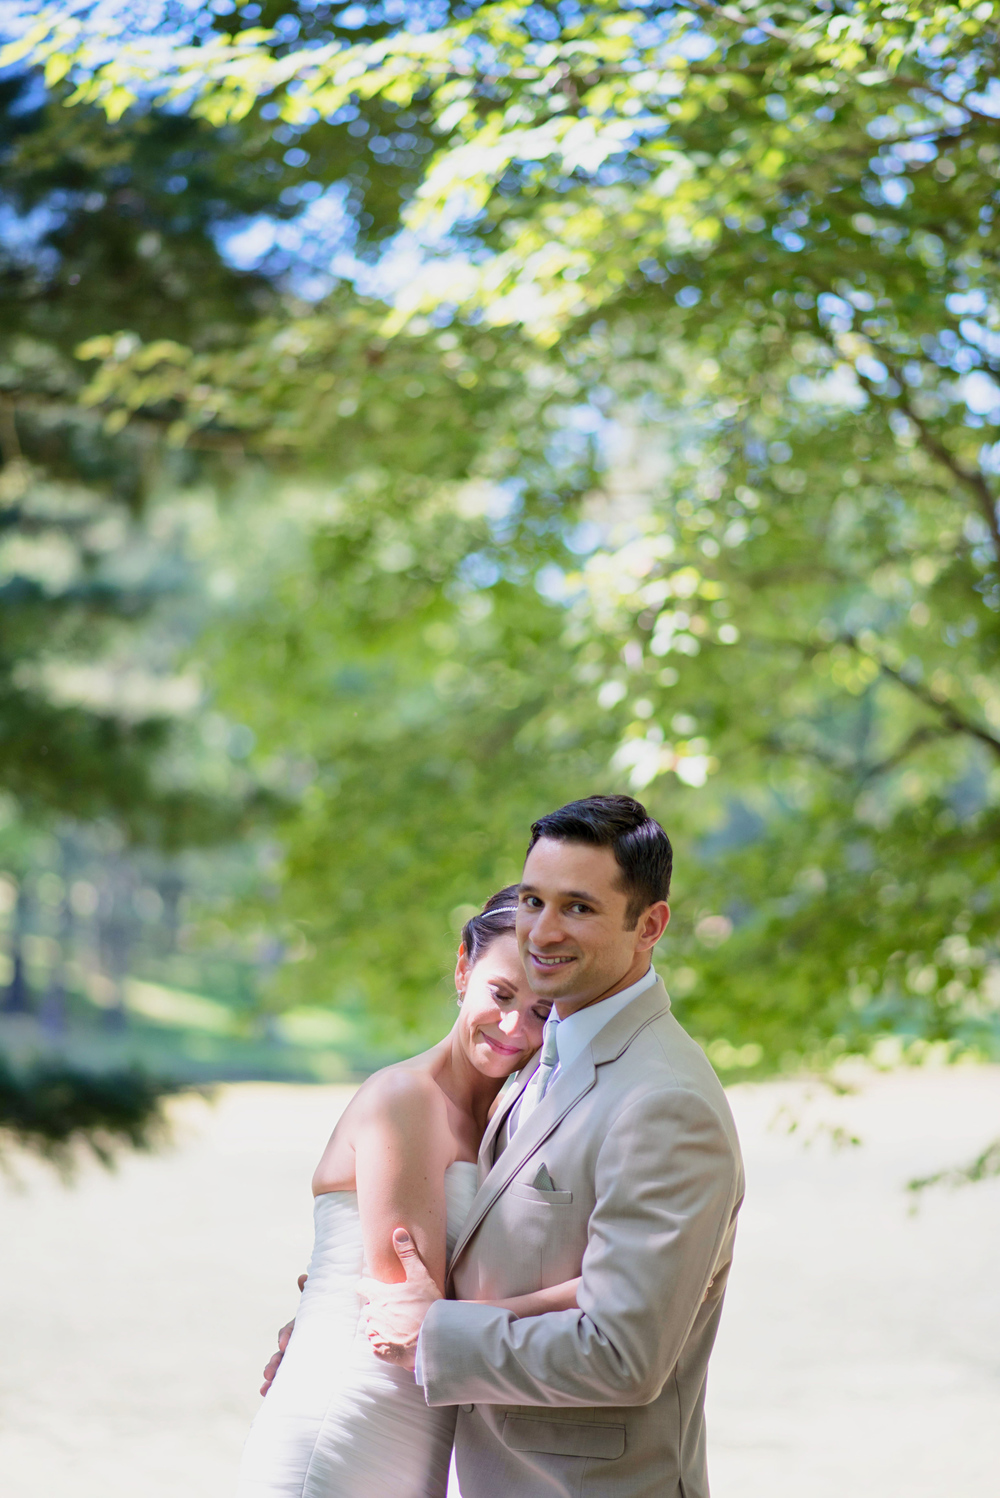 Matt_Swetel_Photography_Erin_and_Jeff_married020.jpg